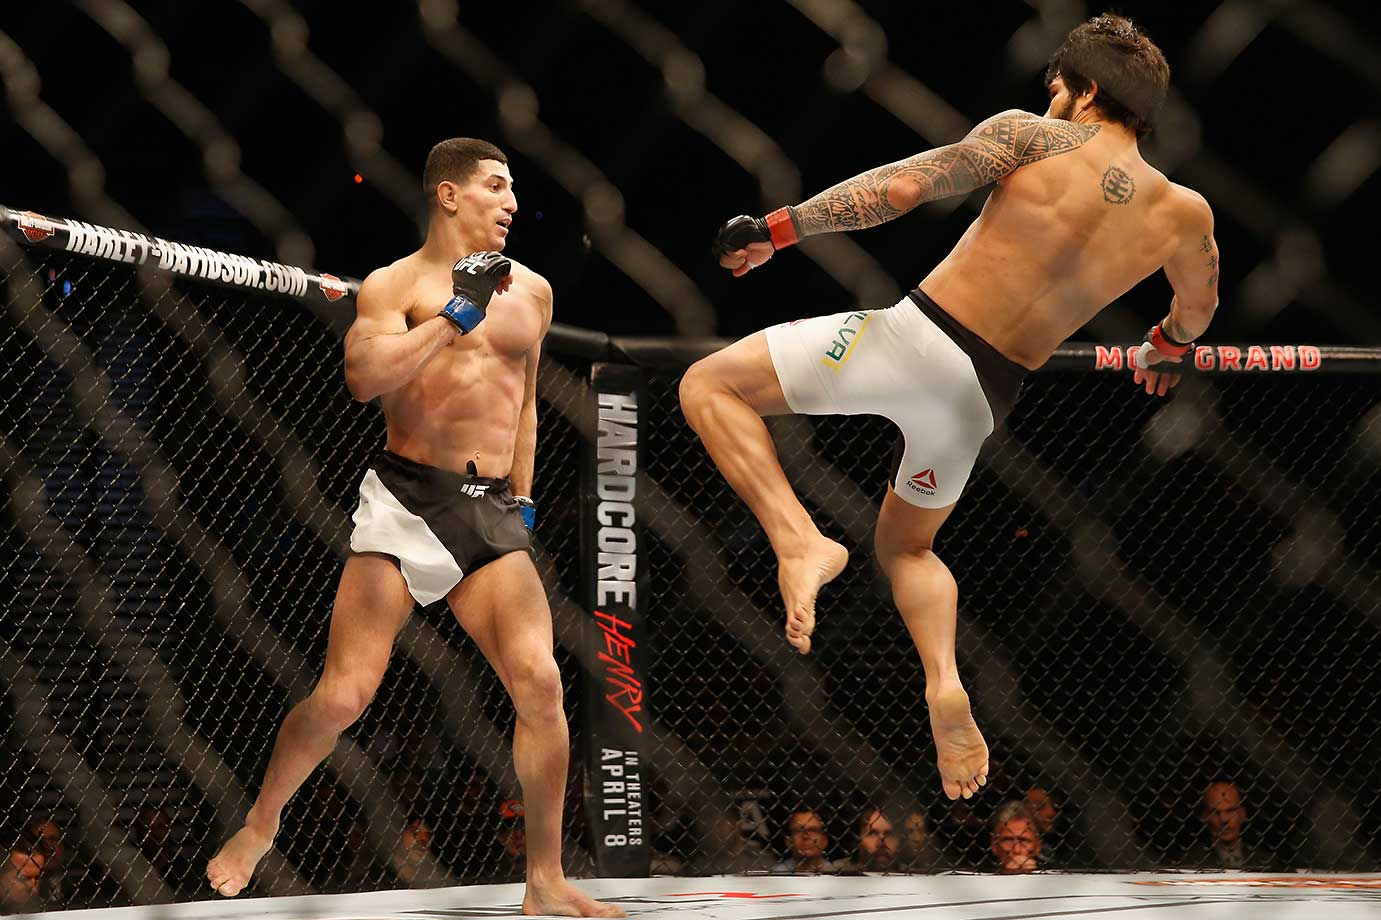 Erick Silva of Brazil kicks Nordine Taleb of France in their welterweight bout at UFC 196.